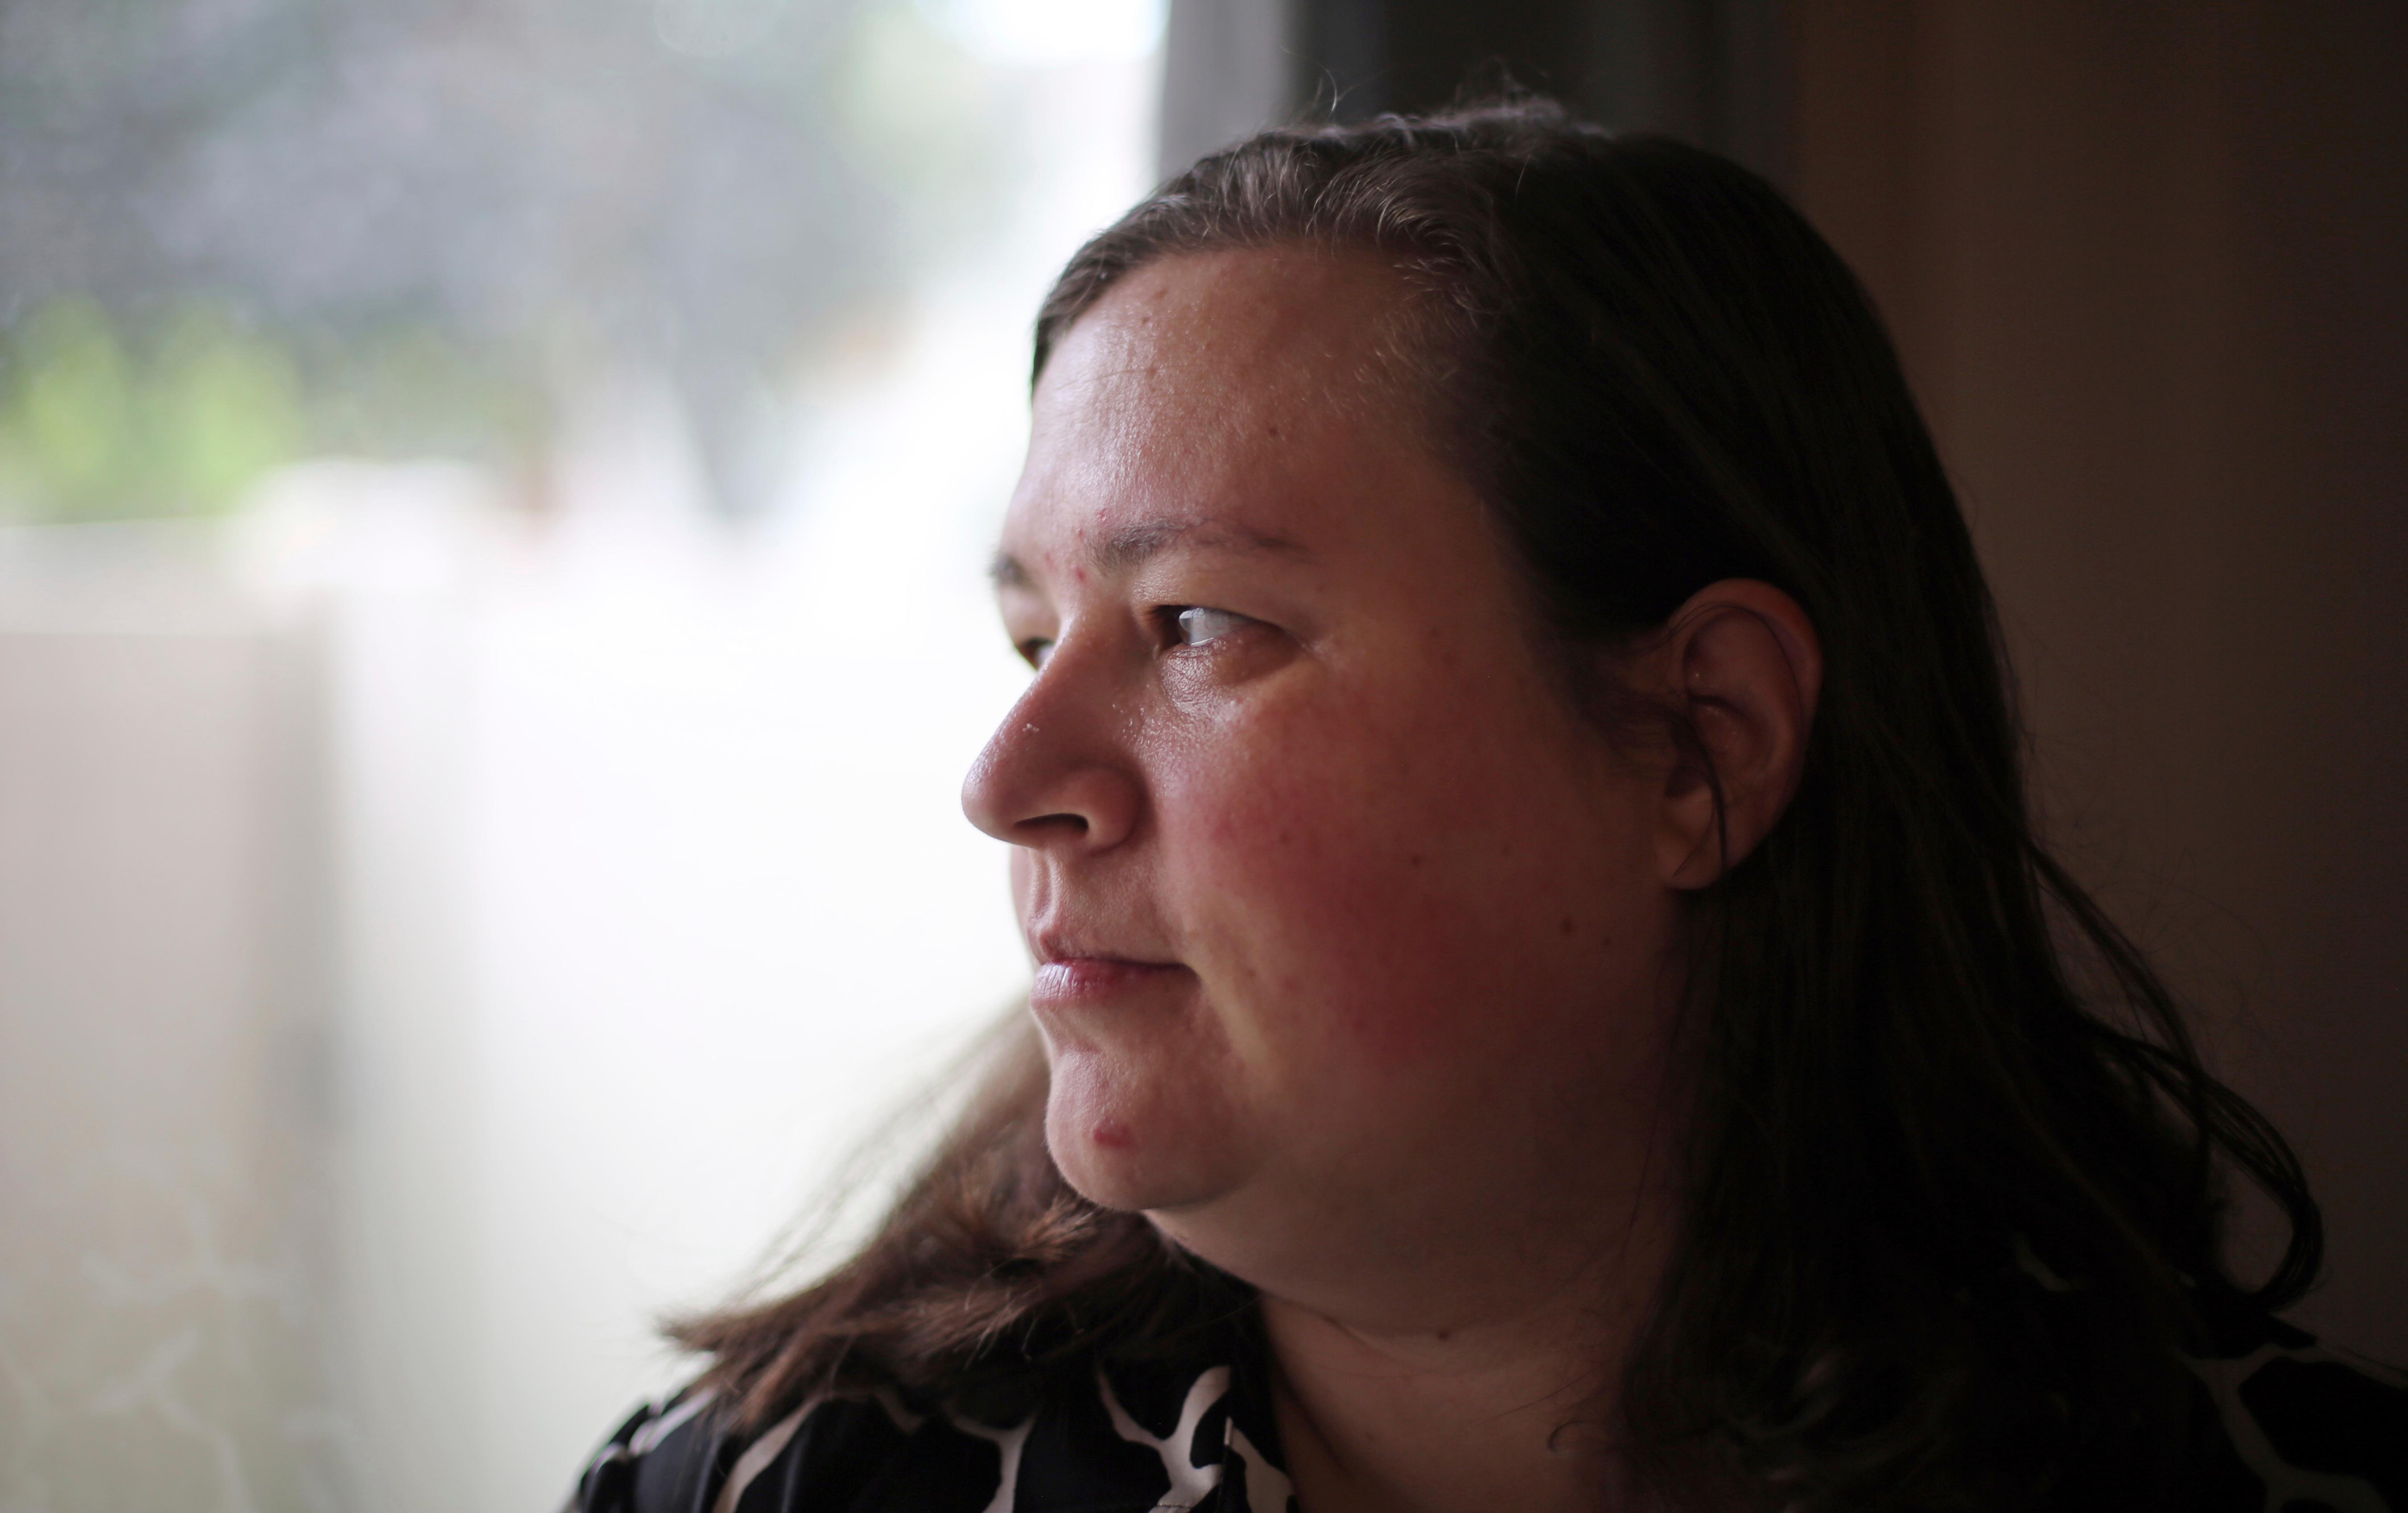 "Heidi Clark looks out of the window of her home in Orem, Utah, on Friday, May 18, 2018. Clark became pregnant at 16 and married soon after, under pressure from her boyfriend's religious community of Seventh-Day Adventists in Pennsylvania, she said. ""I always felt a little bit like I was trapped,"" Clark said, now 40. ""I was 17. I was so young."" Utah state Rep. Angela Romero wants to ban marriage for anyone under 18 as part of a national push to outlaw underage marriage. (AP Photo/Rick Bowmer)"